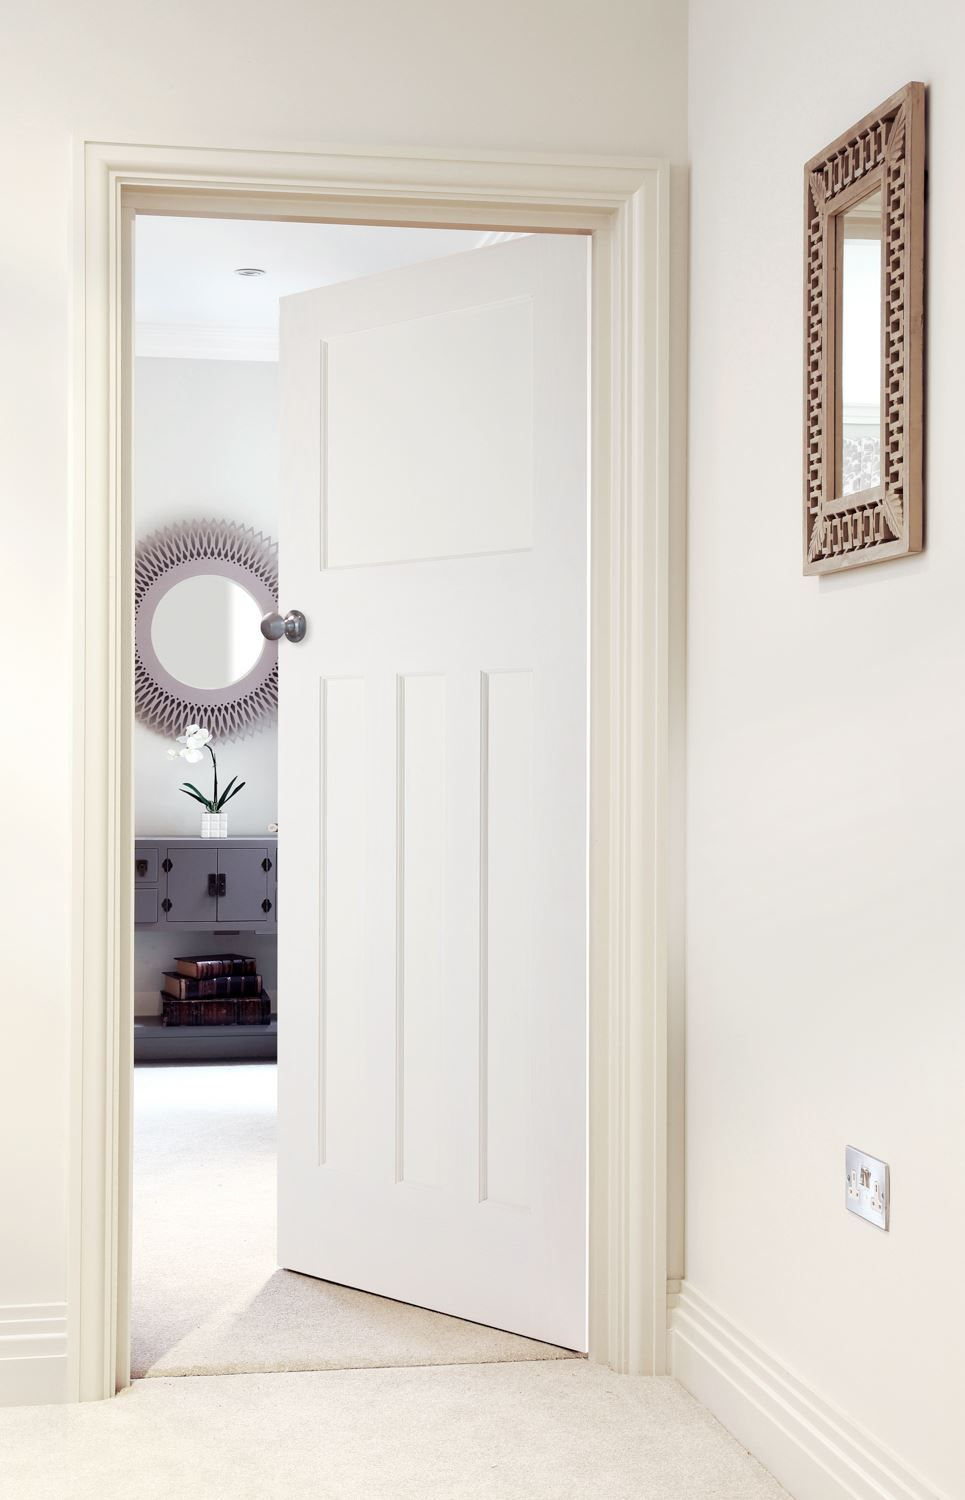 Show details for 1930 4-PANEL (FD30) & Show details for 1930 4-PANEL (FD30) | architraves skirting boards ...